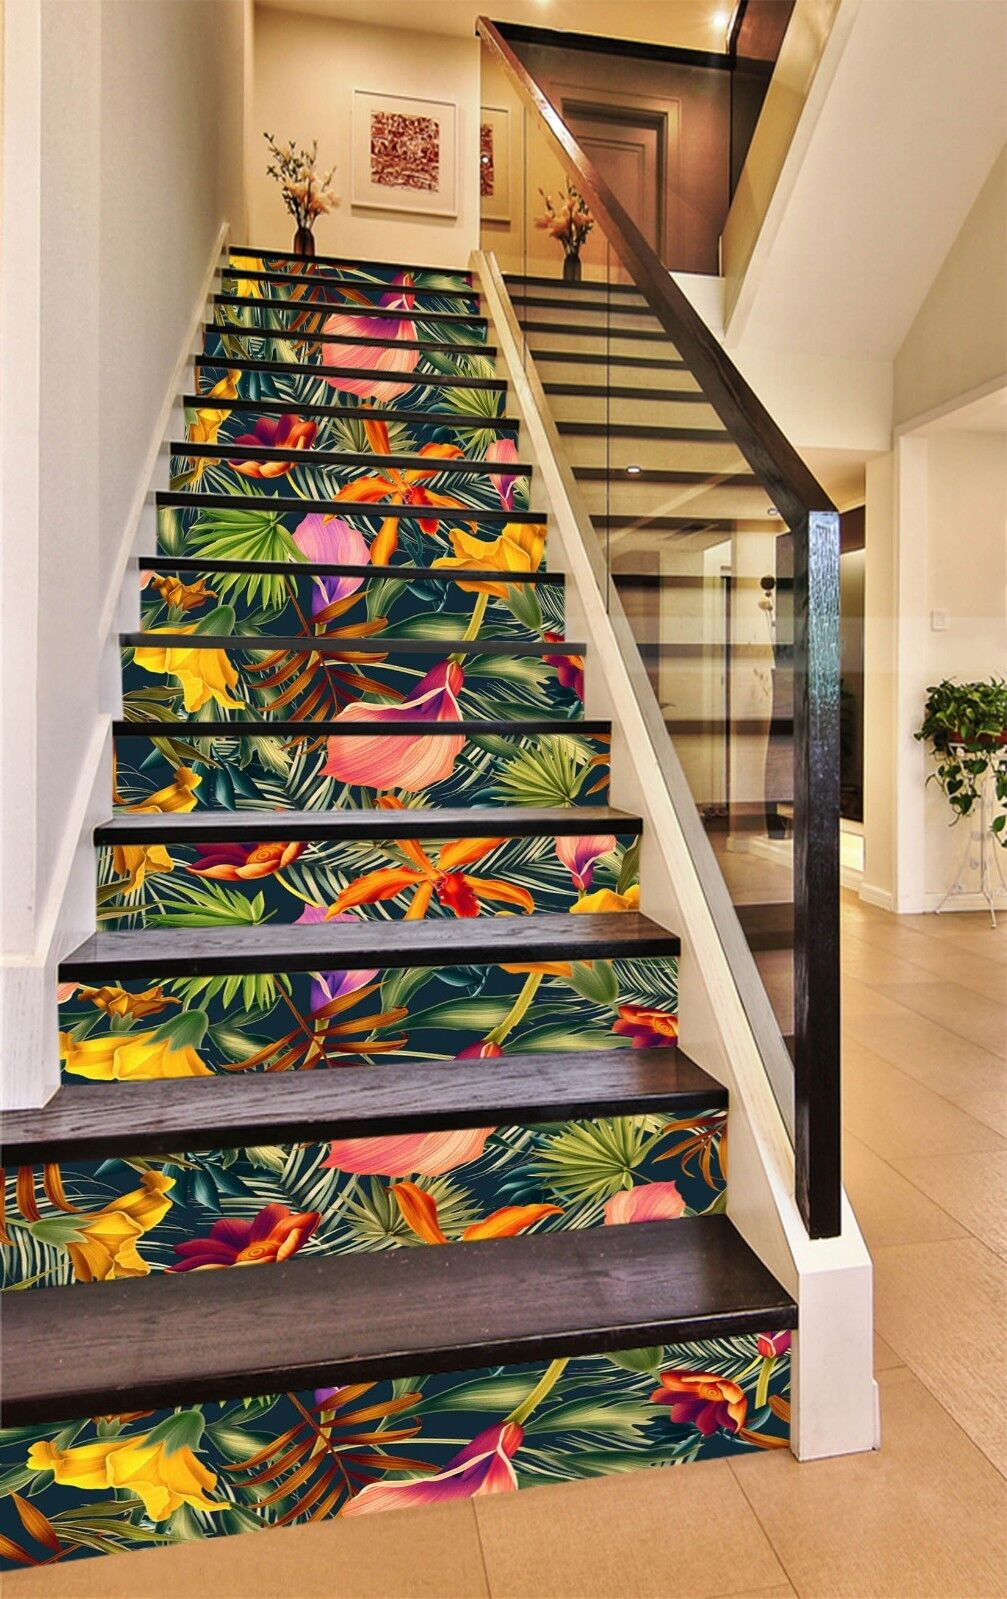 3D Flower leaf 7 Stair Risers Decoration Photo Mural Vinyl Decal Wallpaper UK